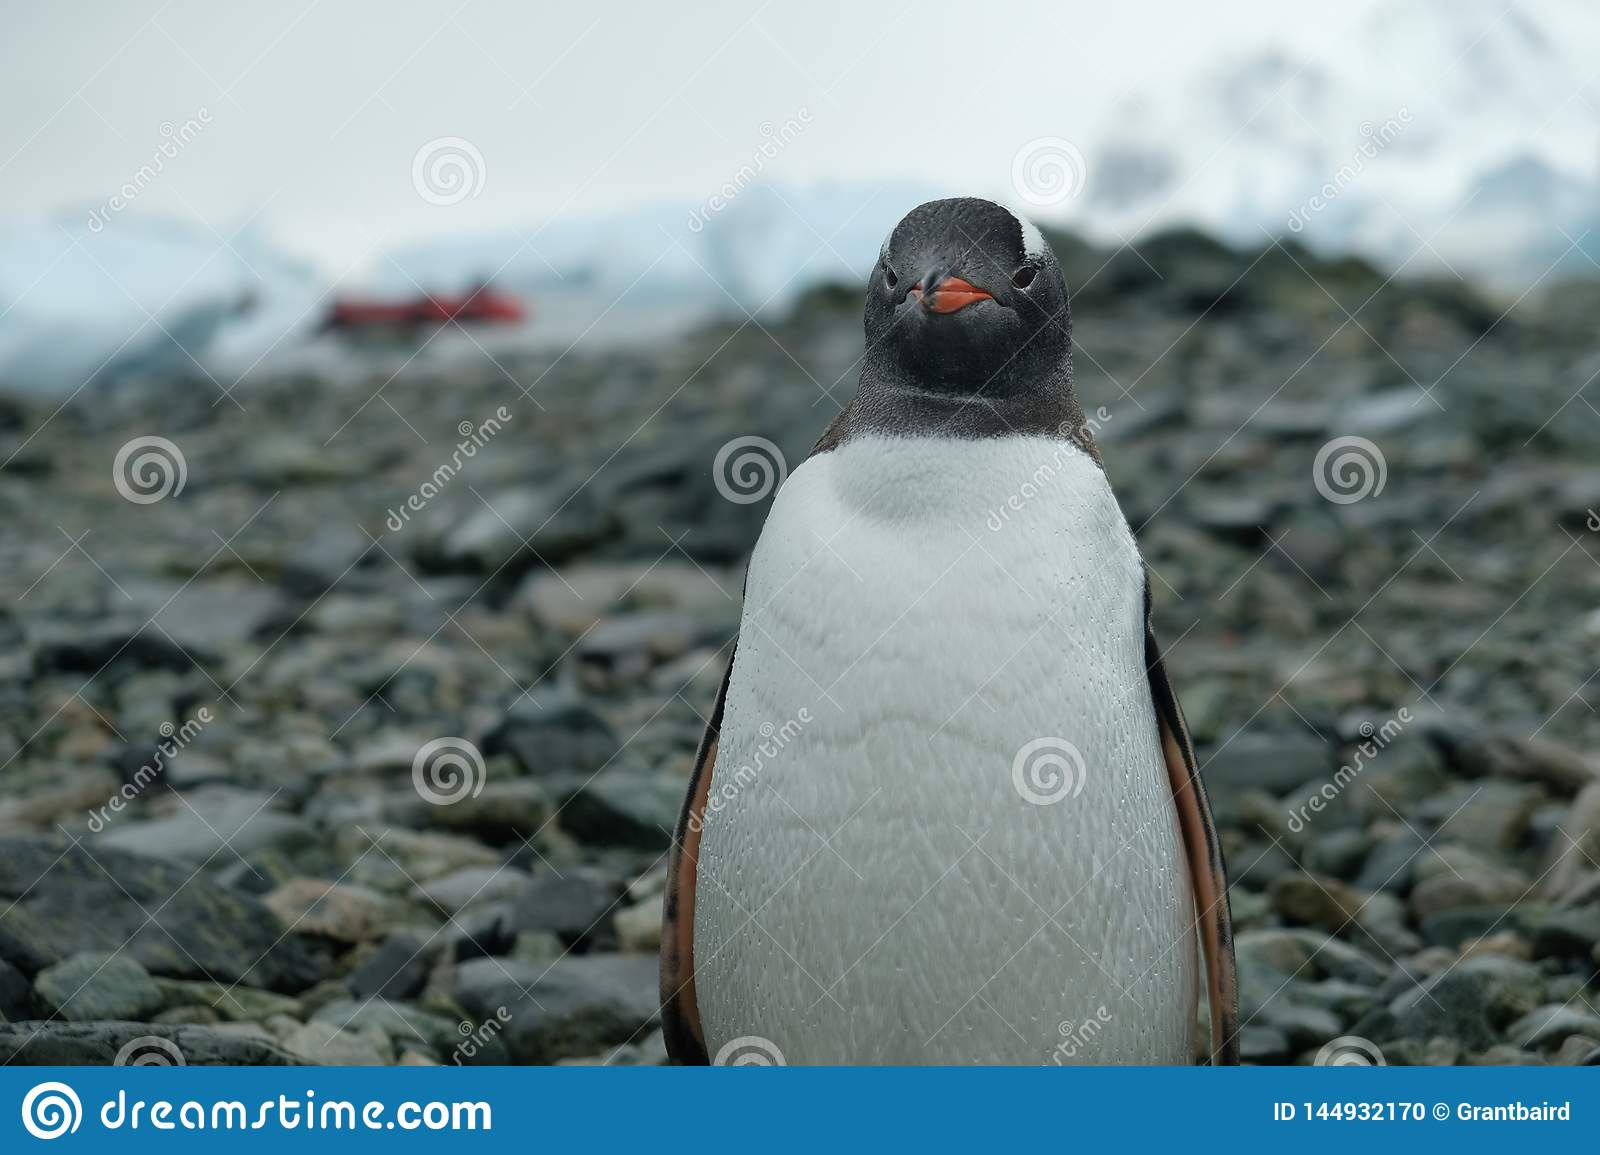 Antarctica Gentoo penguin stands on rocky beach with water drops on feathers, red boat